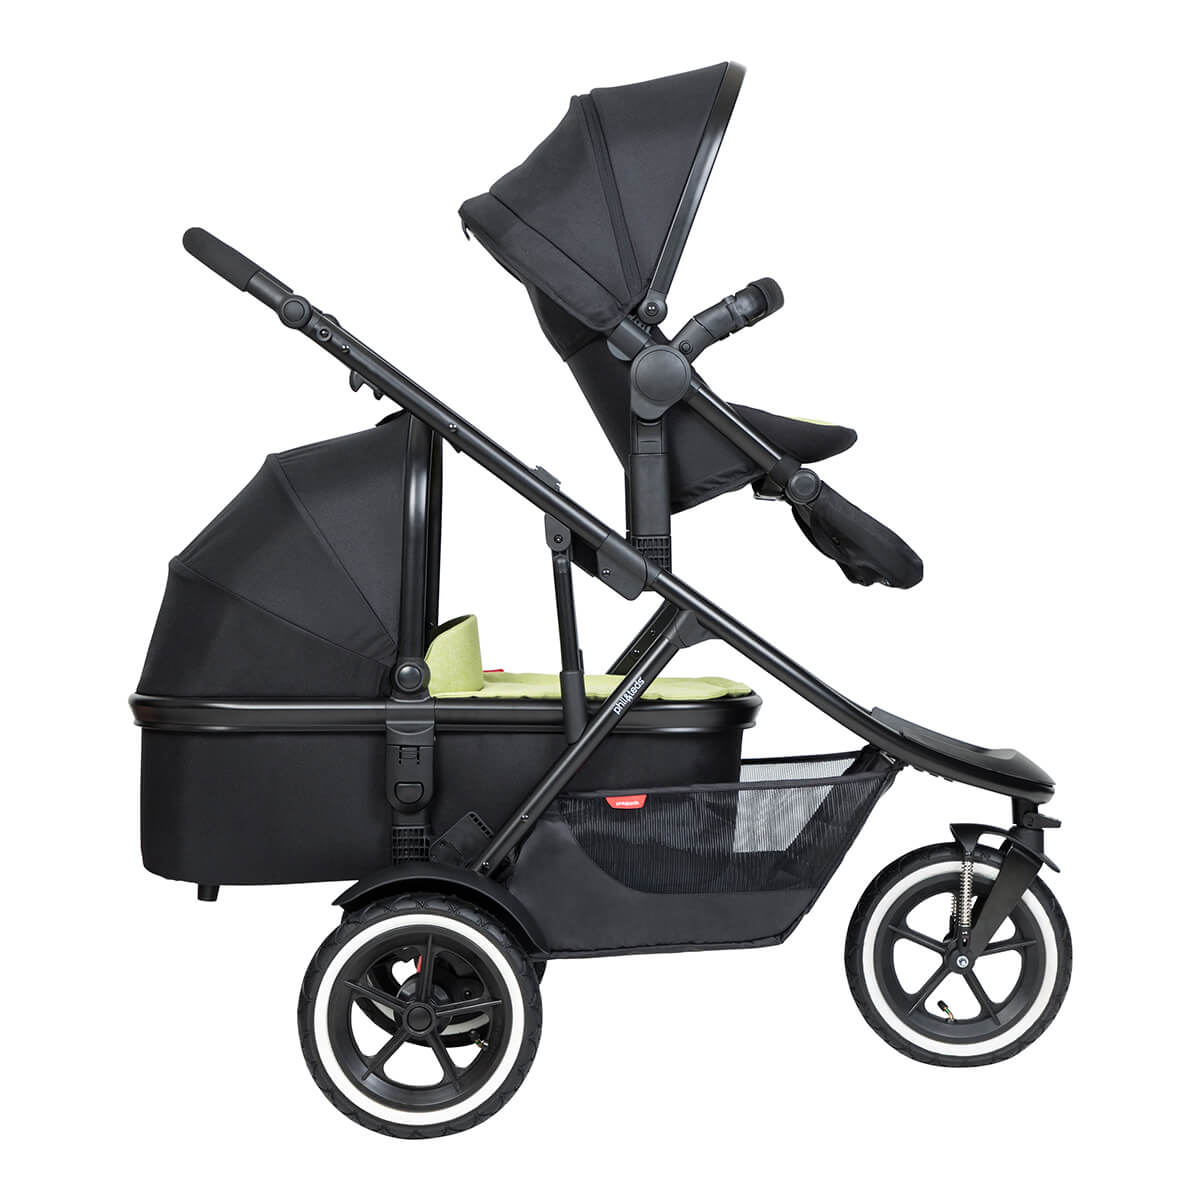 https://cdn.accentuate.io/4390323060832/19440099688632/philteds-sport-buggy-with-double-kit-extended-clip-and-snug-carrycot-side-view-v1626488623740.jpg?1200x1200